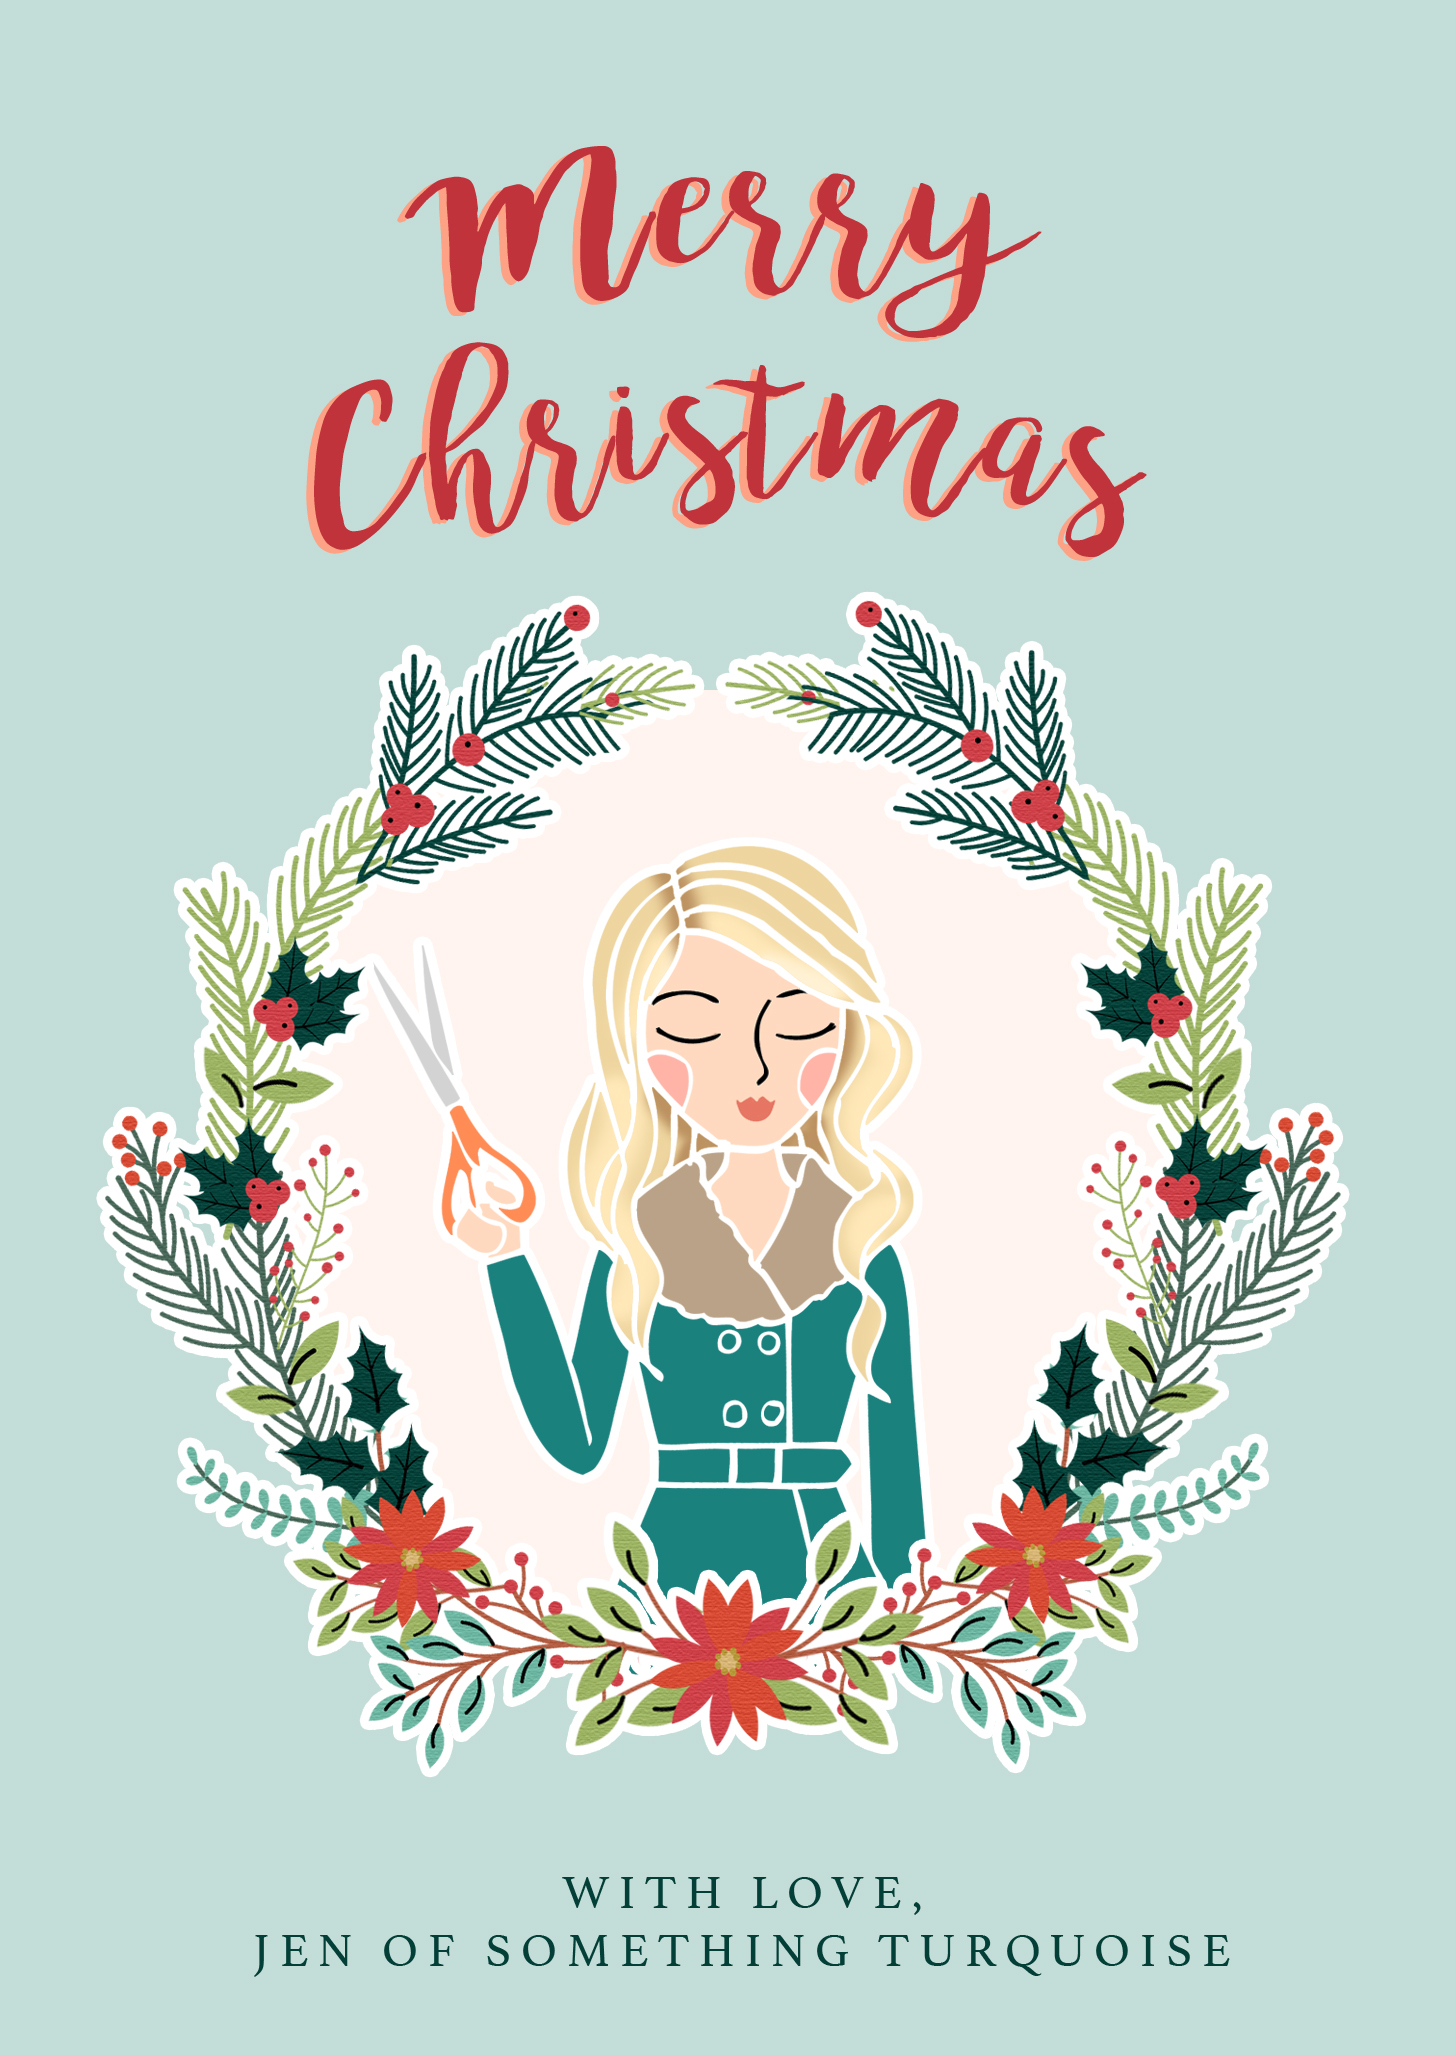 Merry Christmas from Jen of Something Turquoise, by Lily and Threads